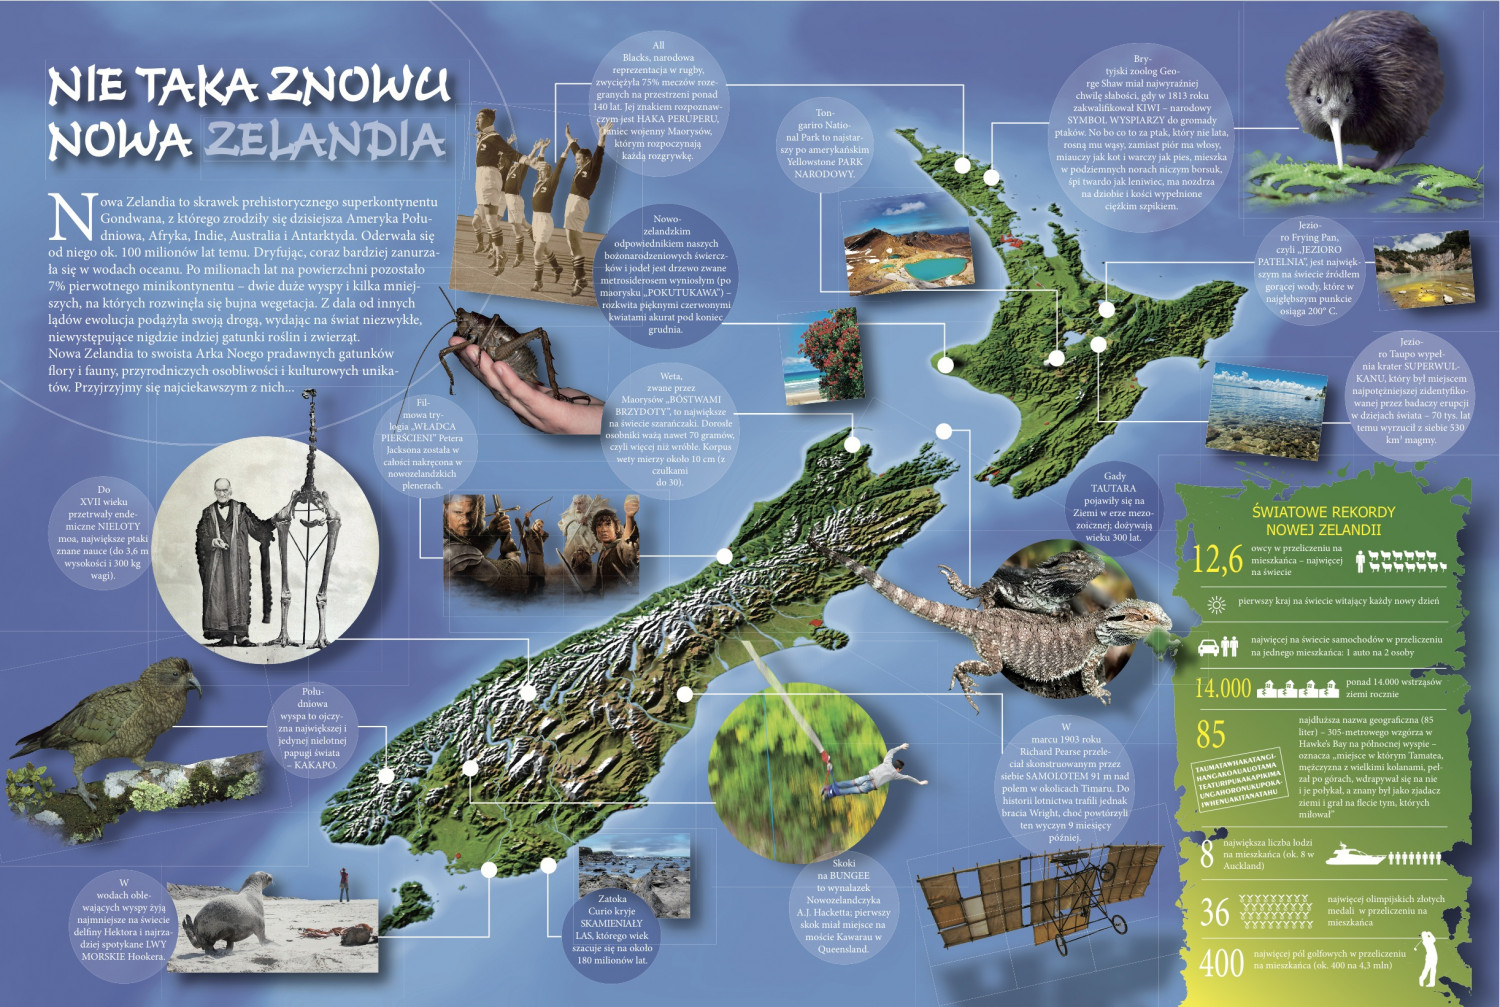 Mysteries and curiosities of New Zealand Infographic